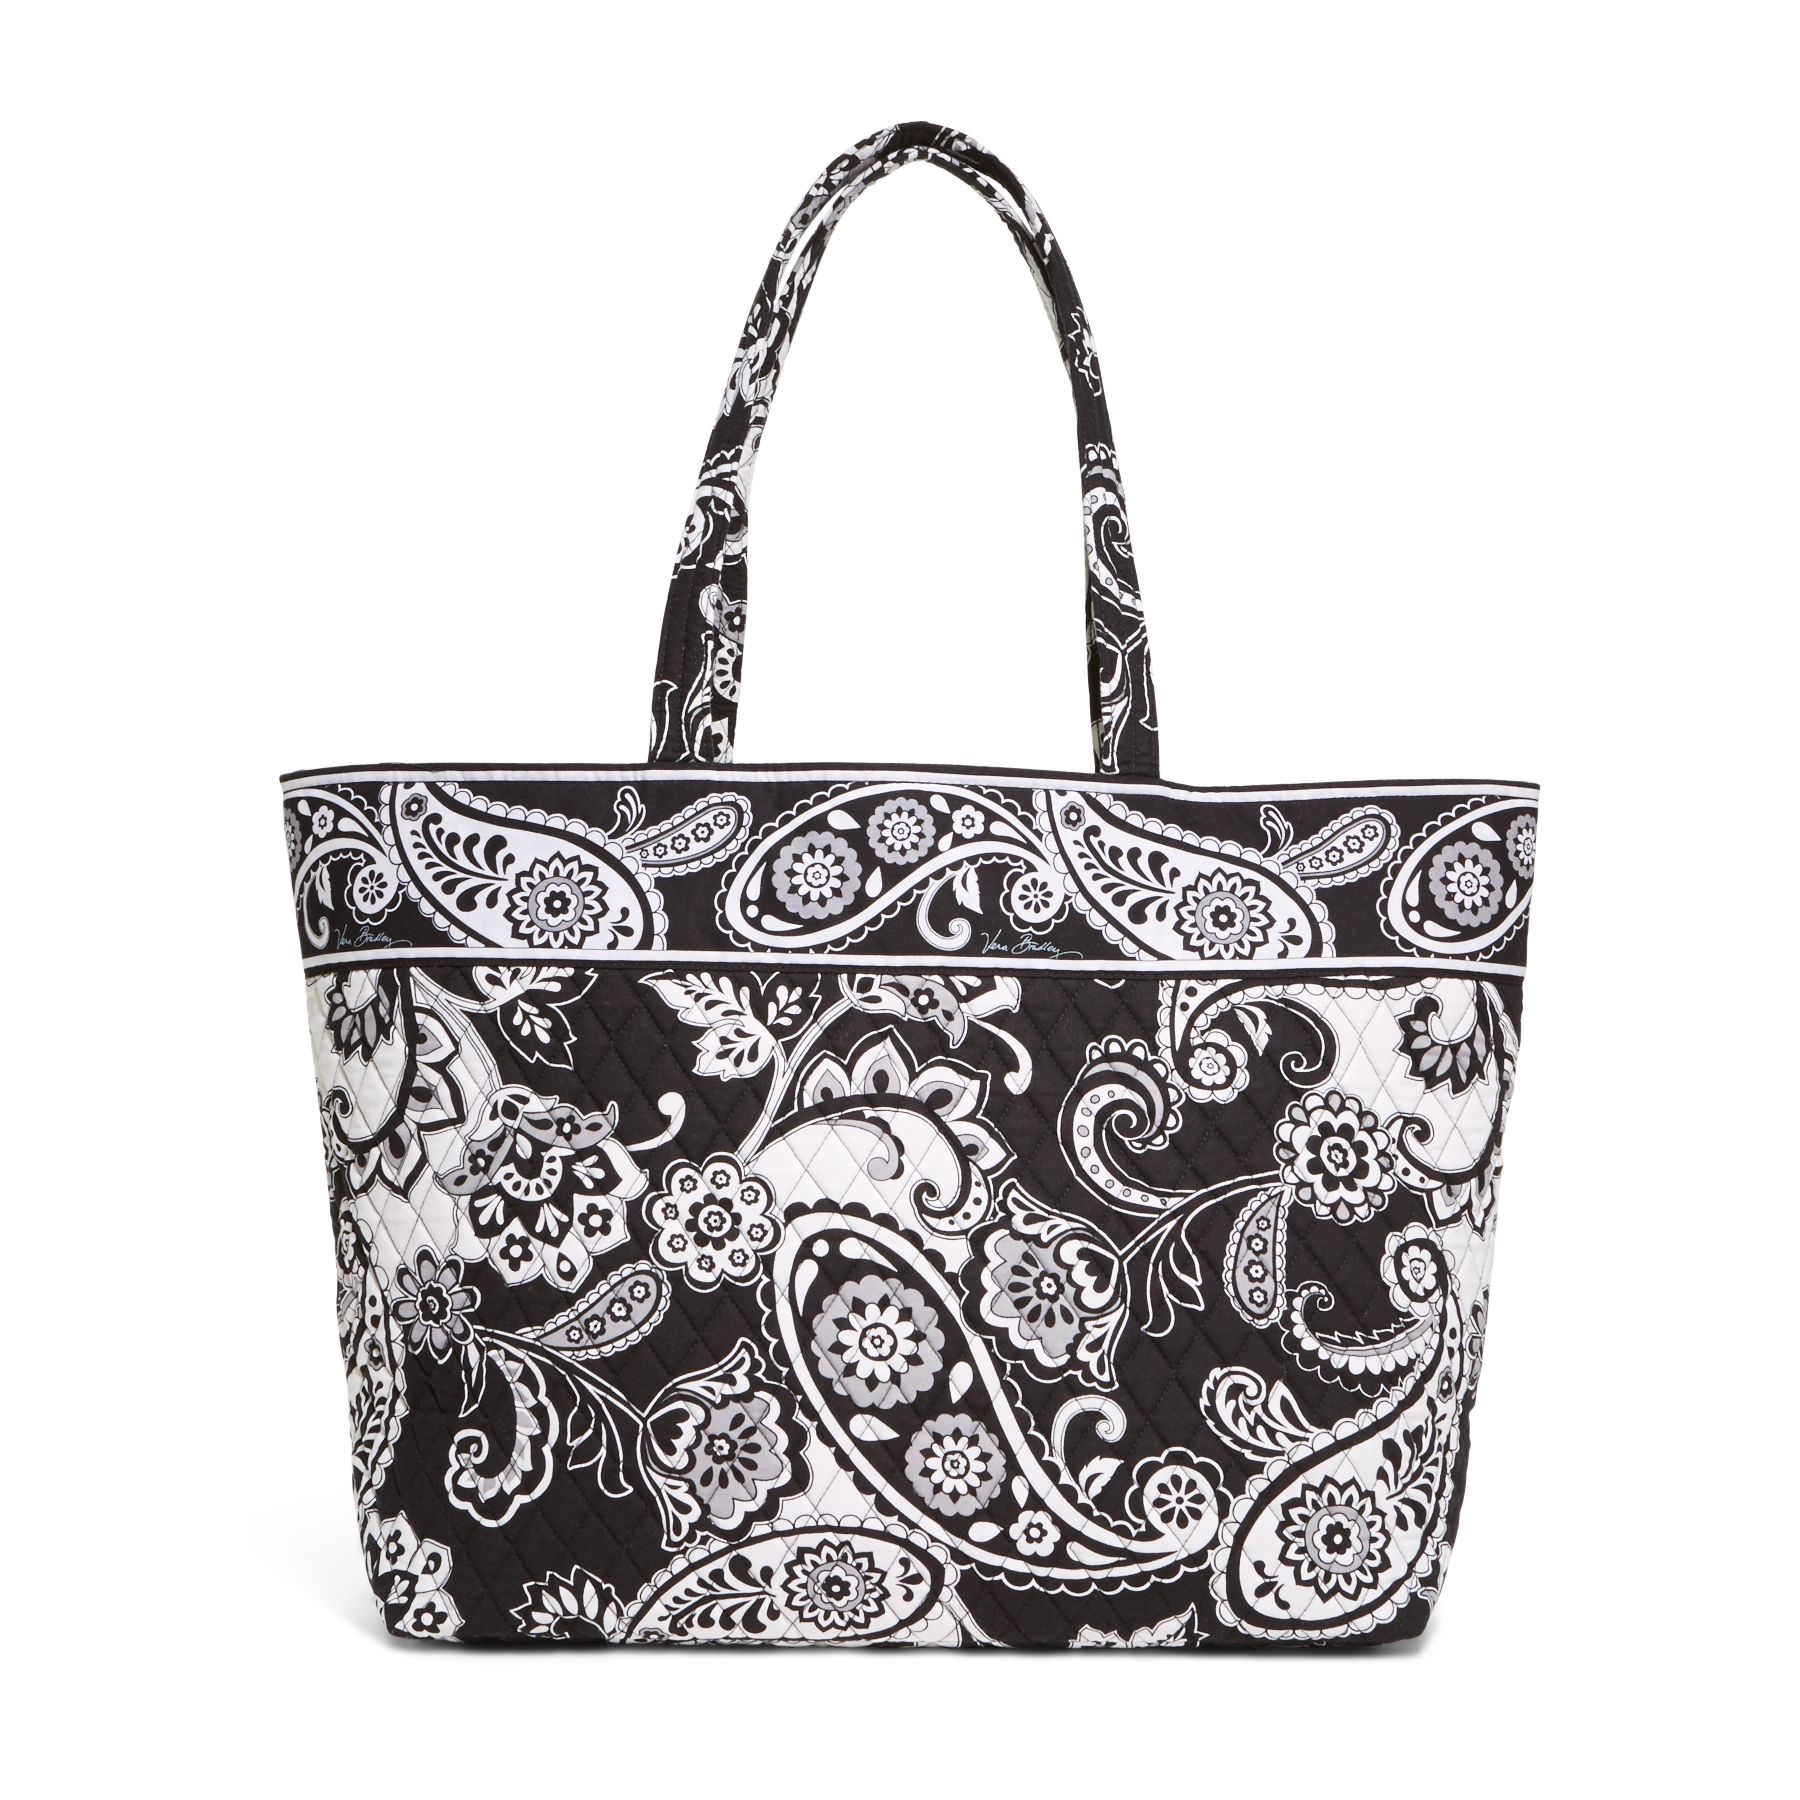 Vera Bradley Grand Tote in Midnight Paisley